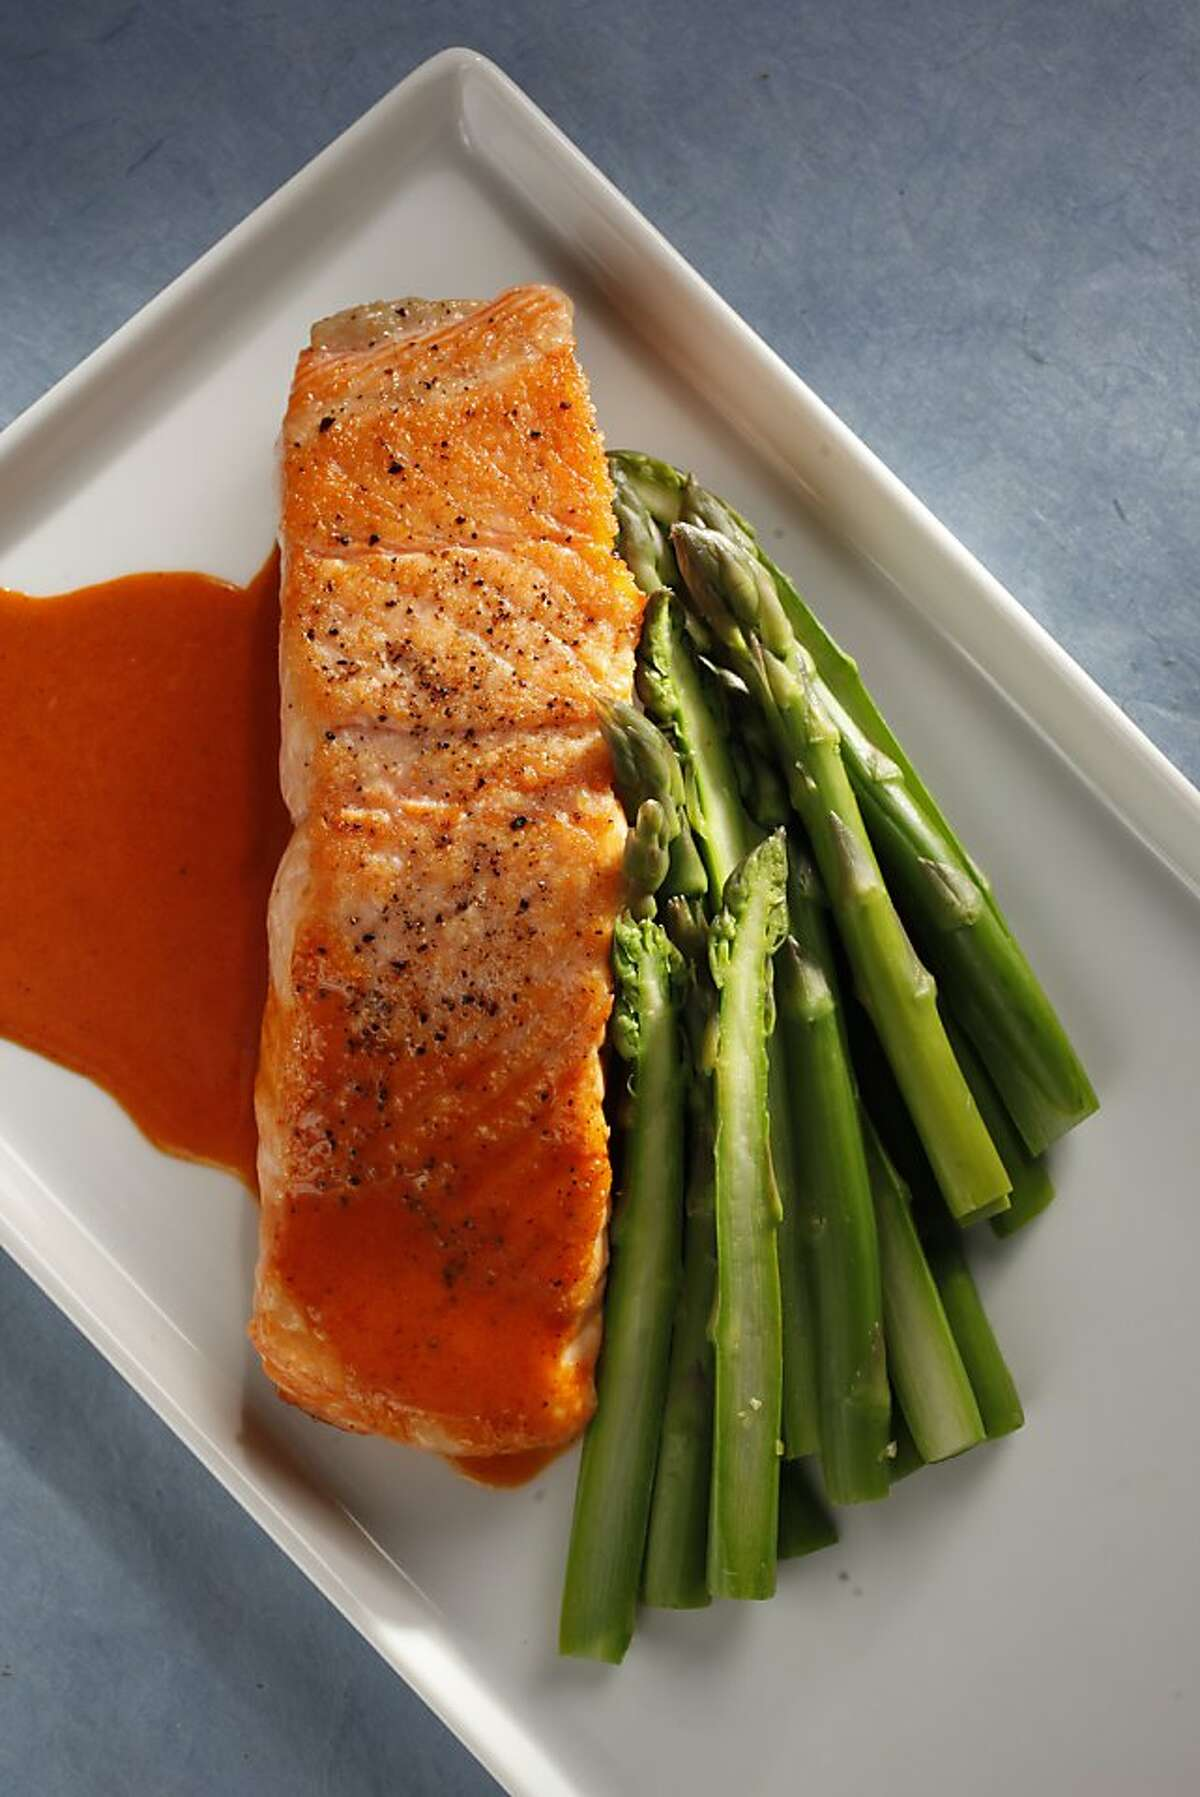 Pan-seared salmon fillet with smokey chili-lime butter sauce as seen in San Francisco, California, on Wednesday April 20, 2011. Food styled by Sophie Brickman.